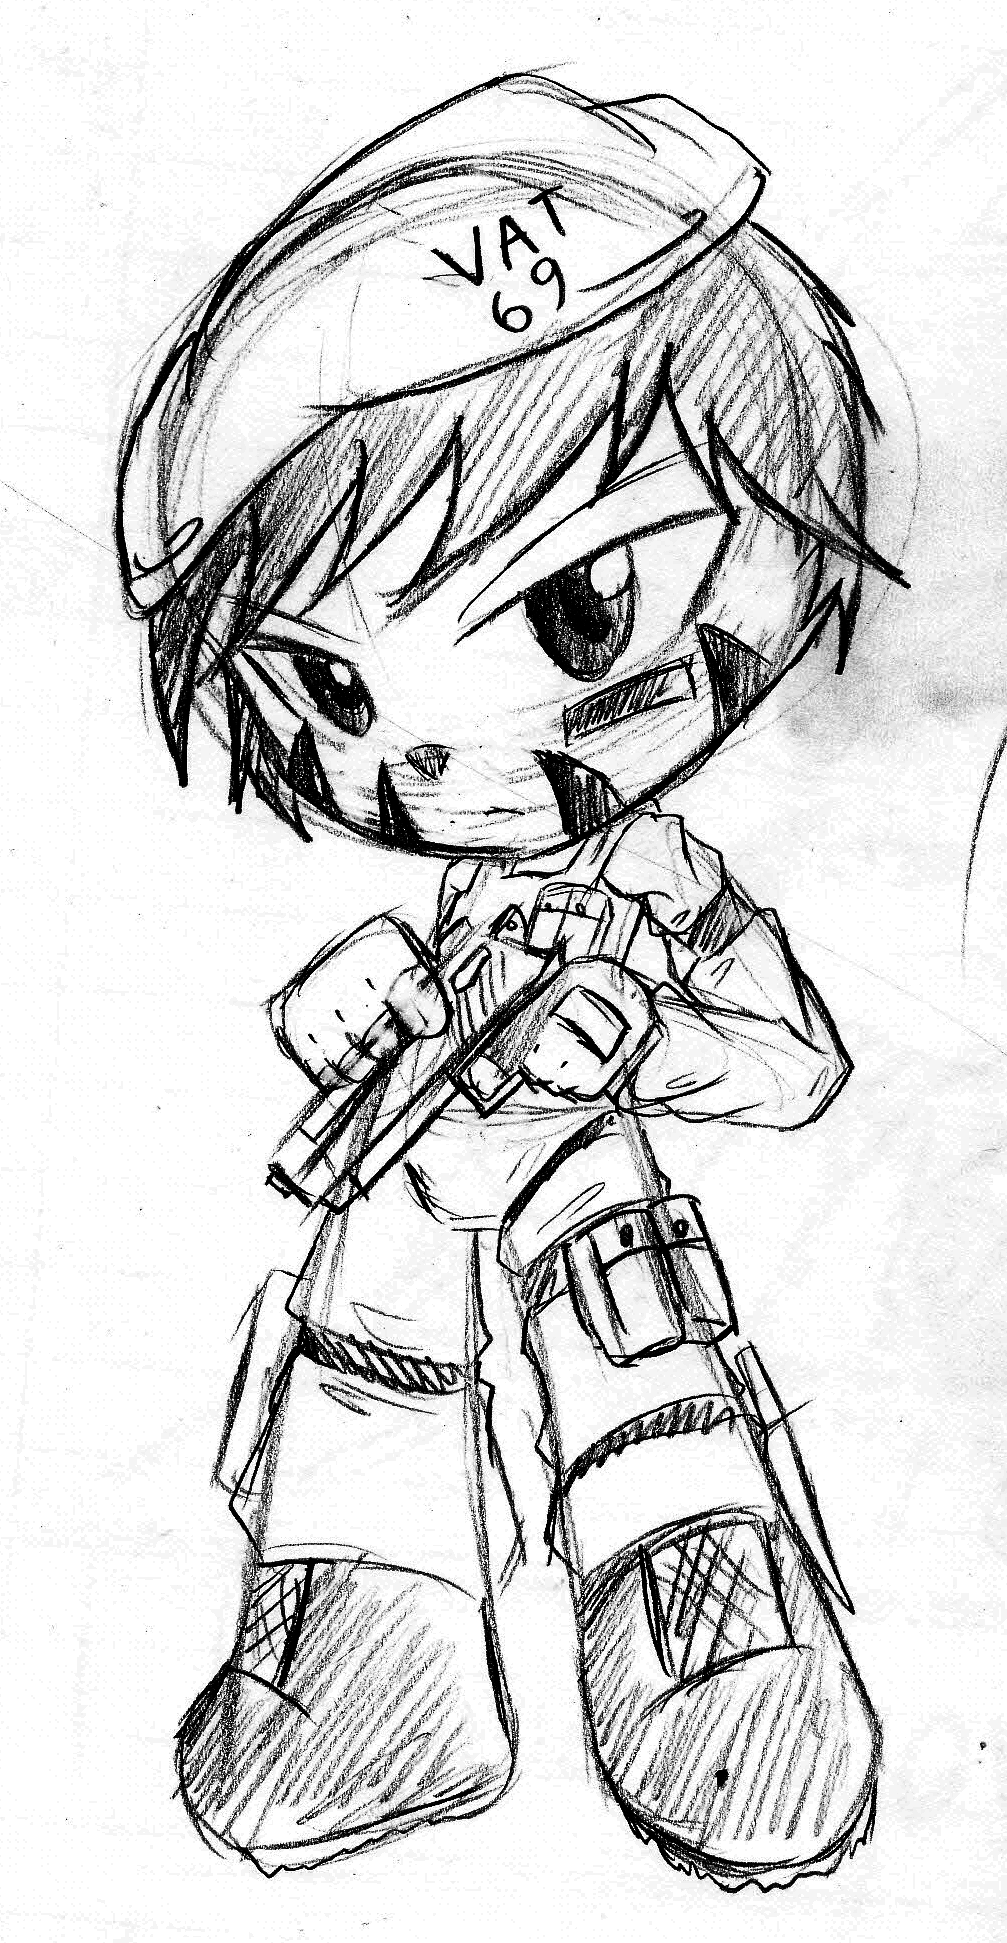 Malaysia Legendary Spec Ops- Vat 69 -Sketch by Rumilax